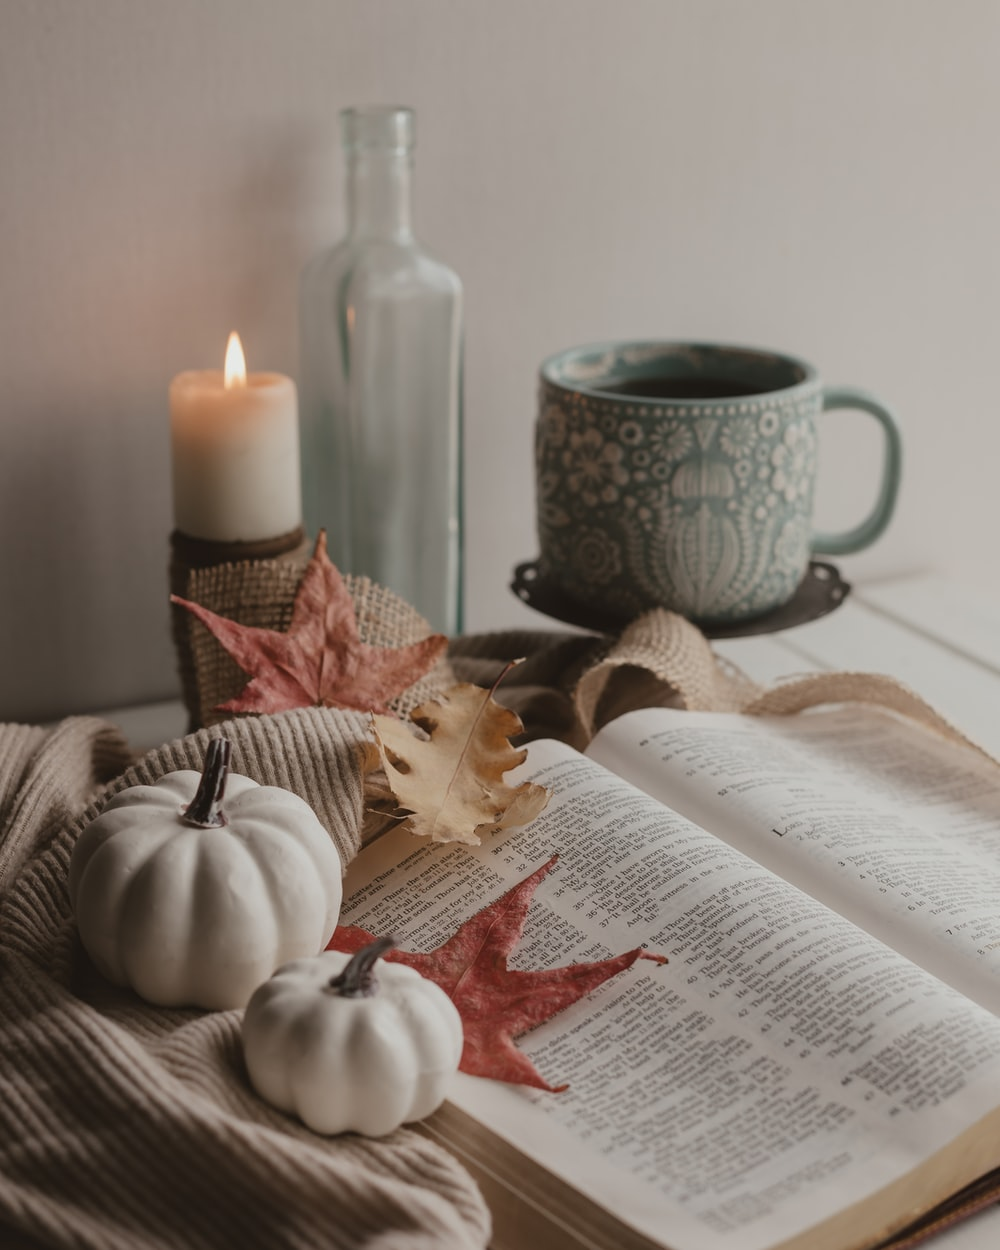 white candle beside white book page